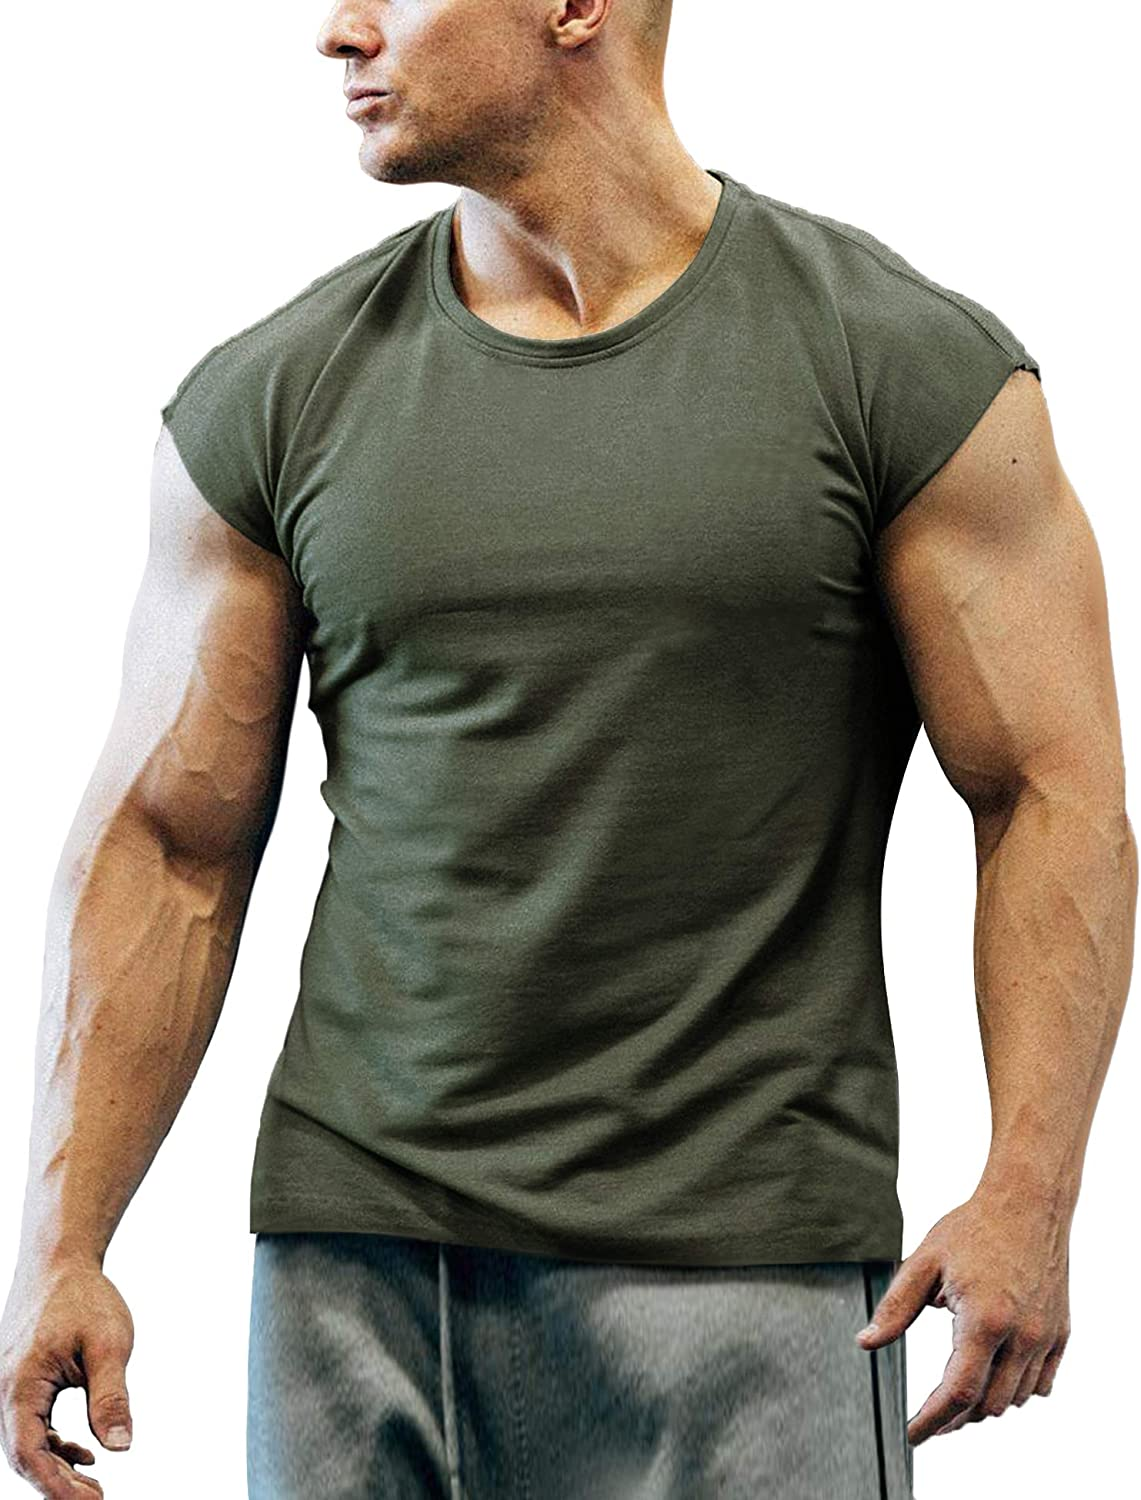 COOFANDY Men's Gym Workout T Shirt Short Sleeve Muscle Cut Bodybuilding Training Fitness Tee Tops